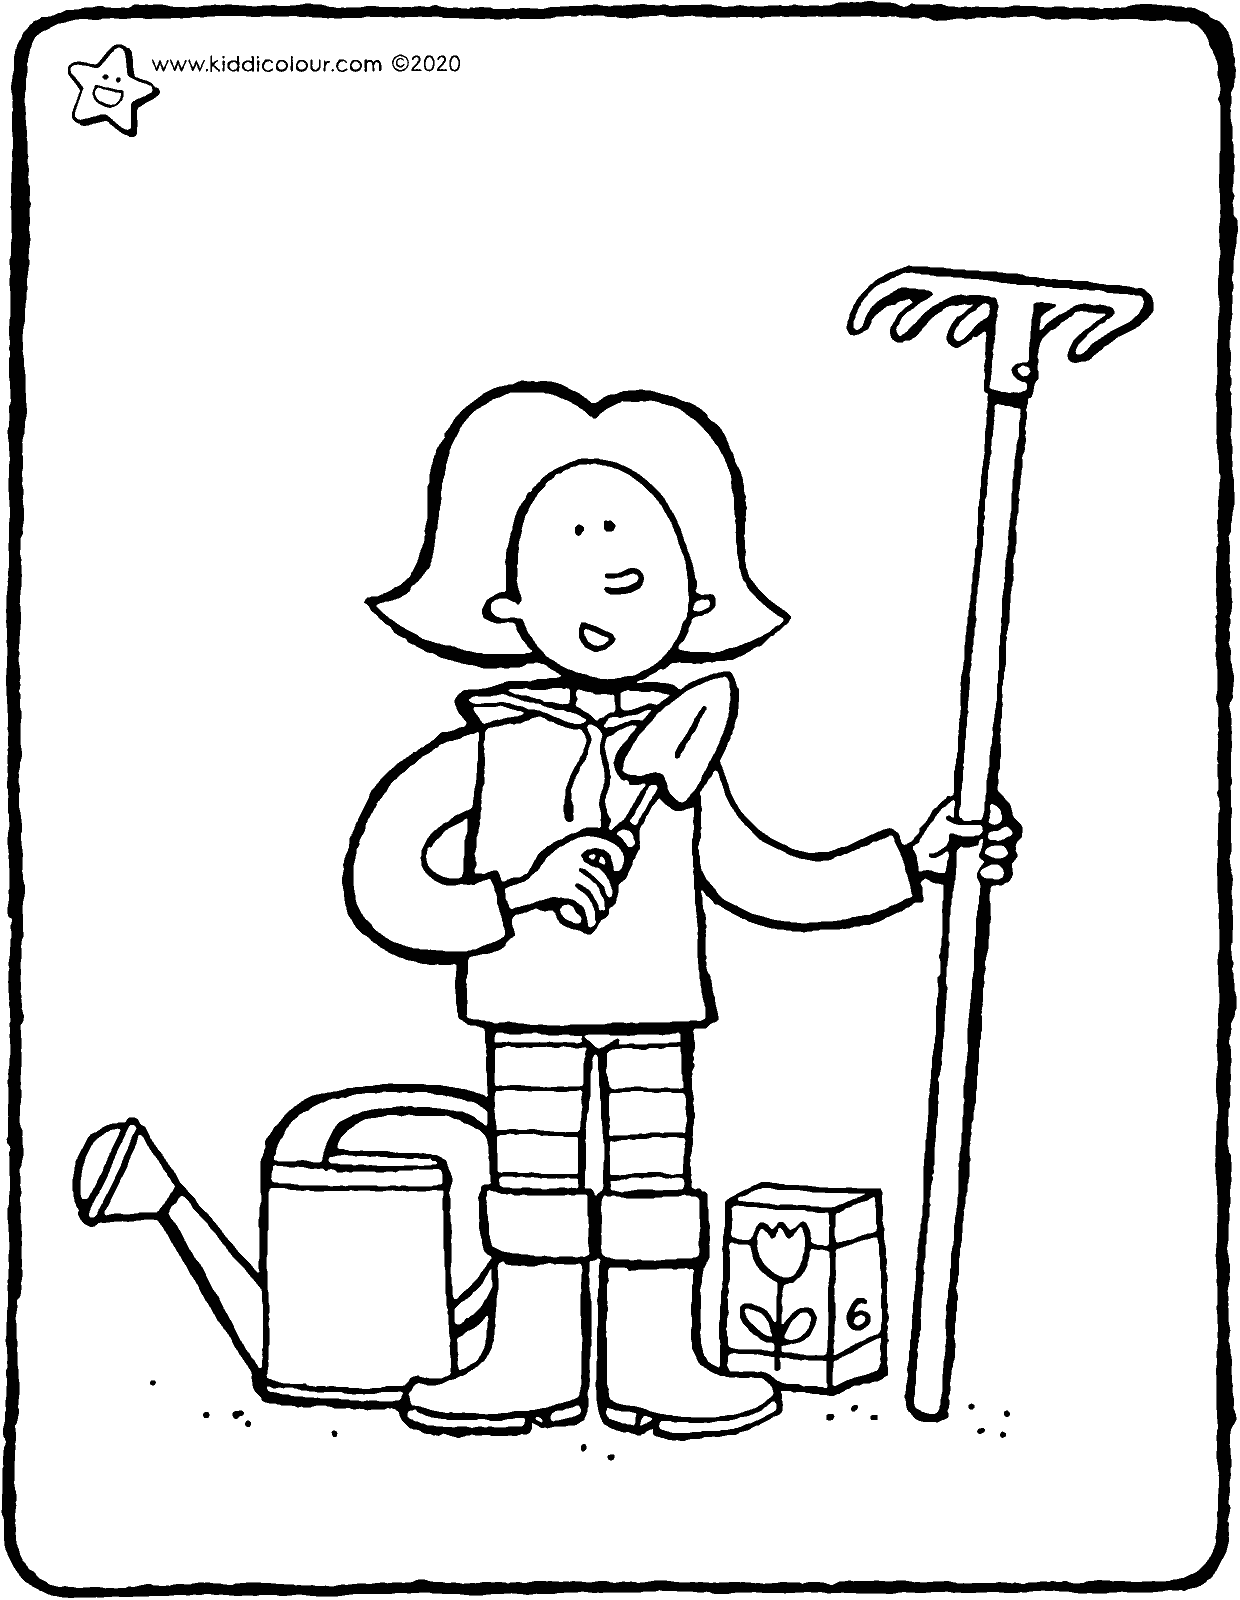 Emma goes to work in the garden colouring page drawing picture 01V